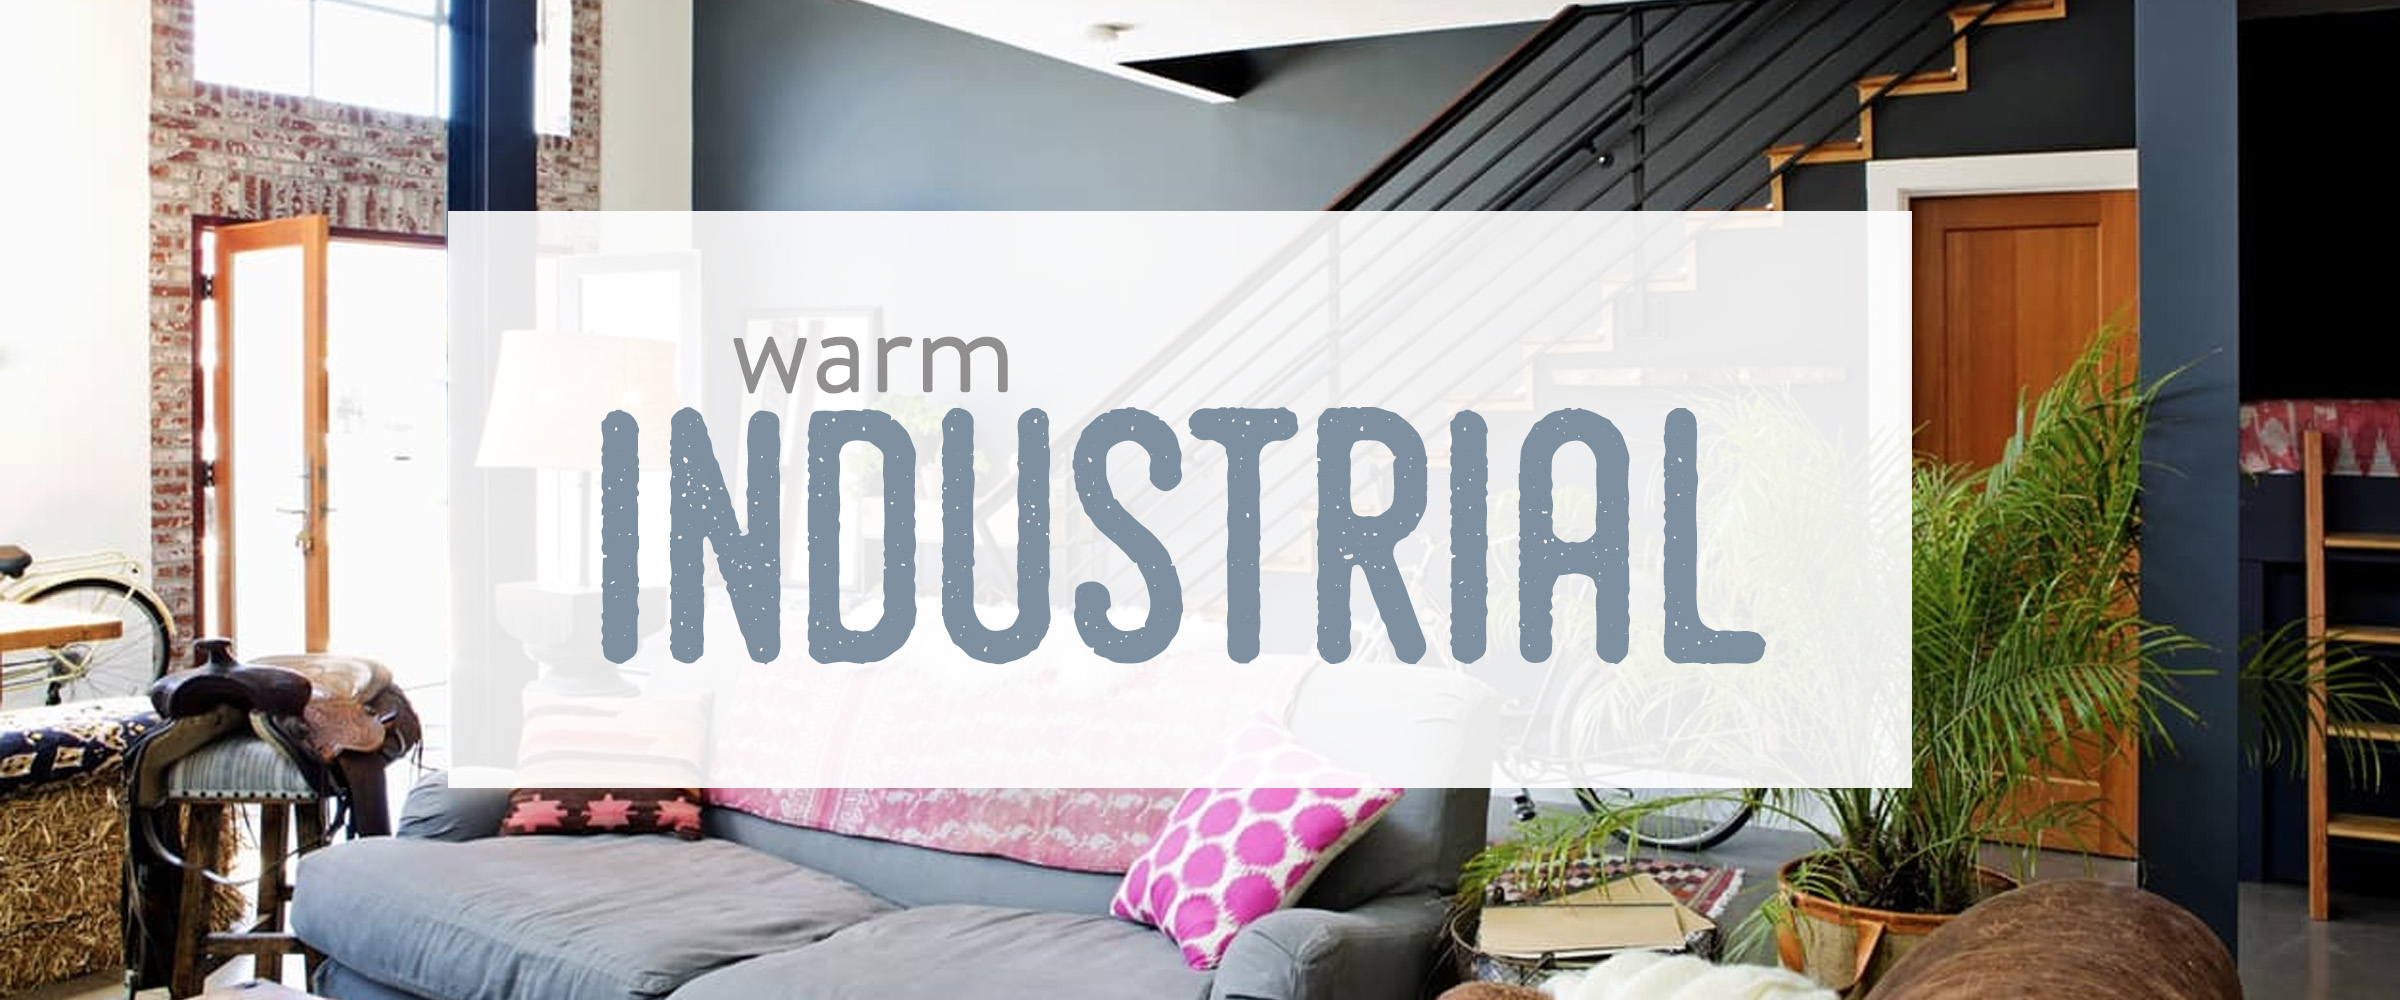 Discover Your Home Decor Personality: Warm Industrial.  52d7d521f029ed204403e98e73f660c28f2bb1aa